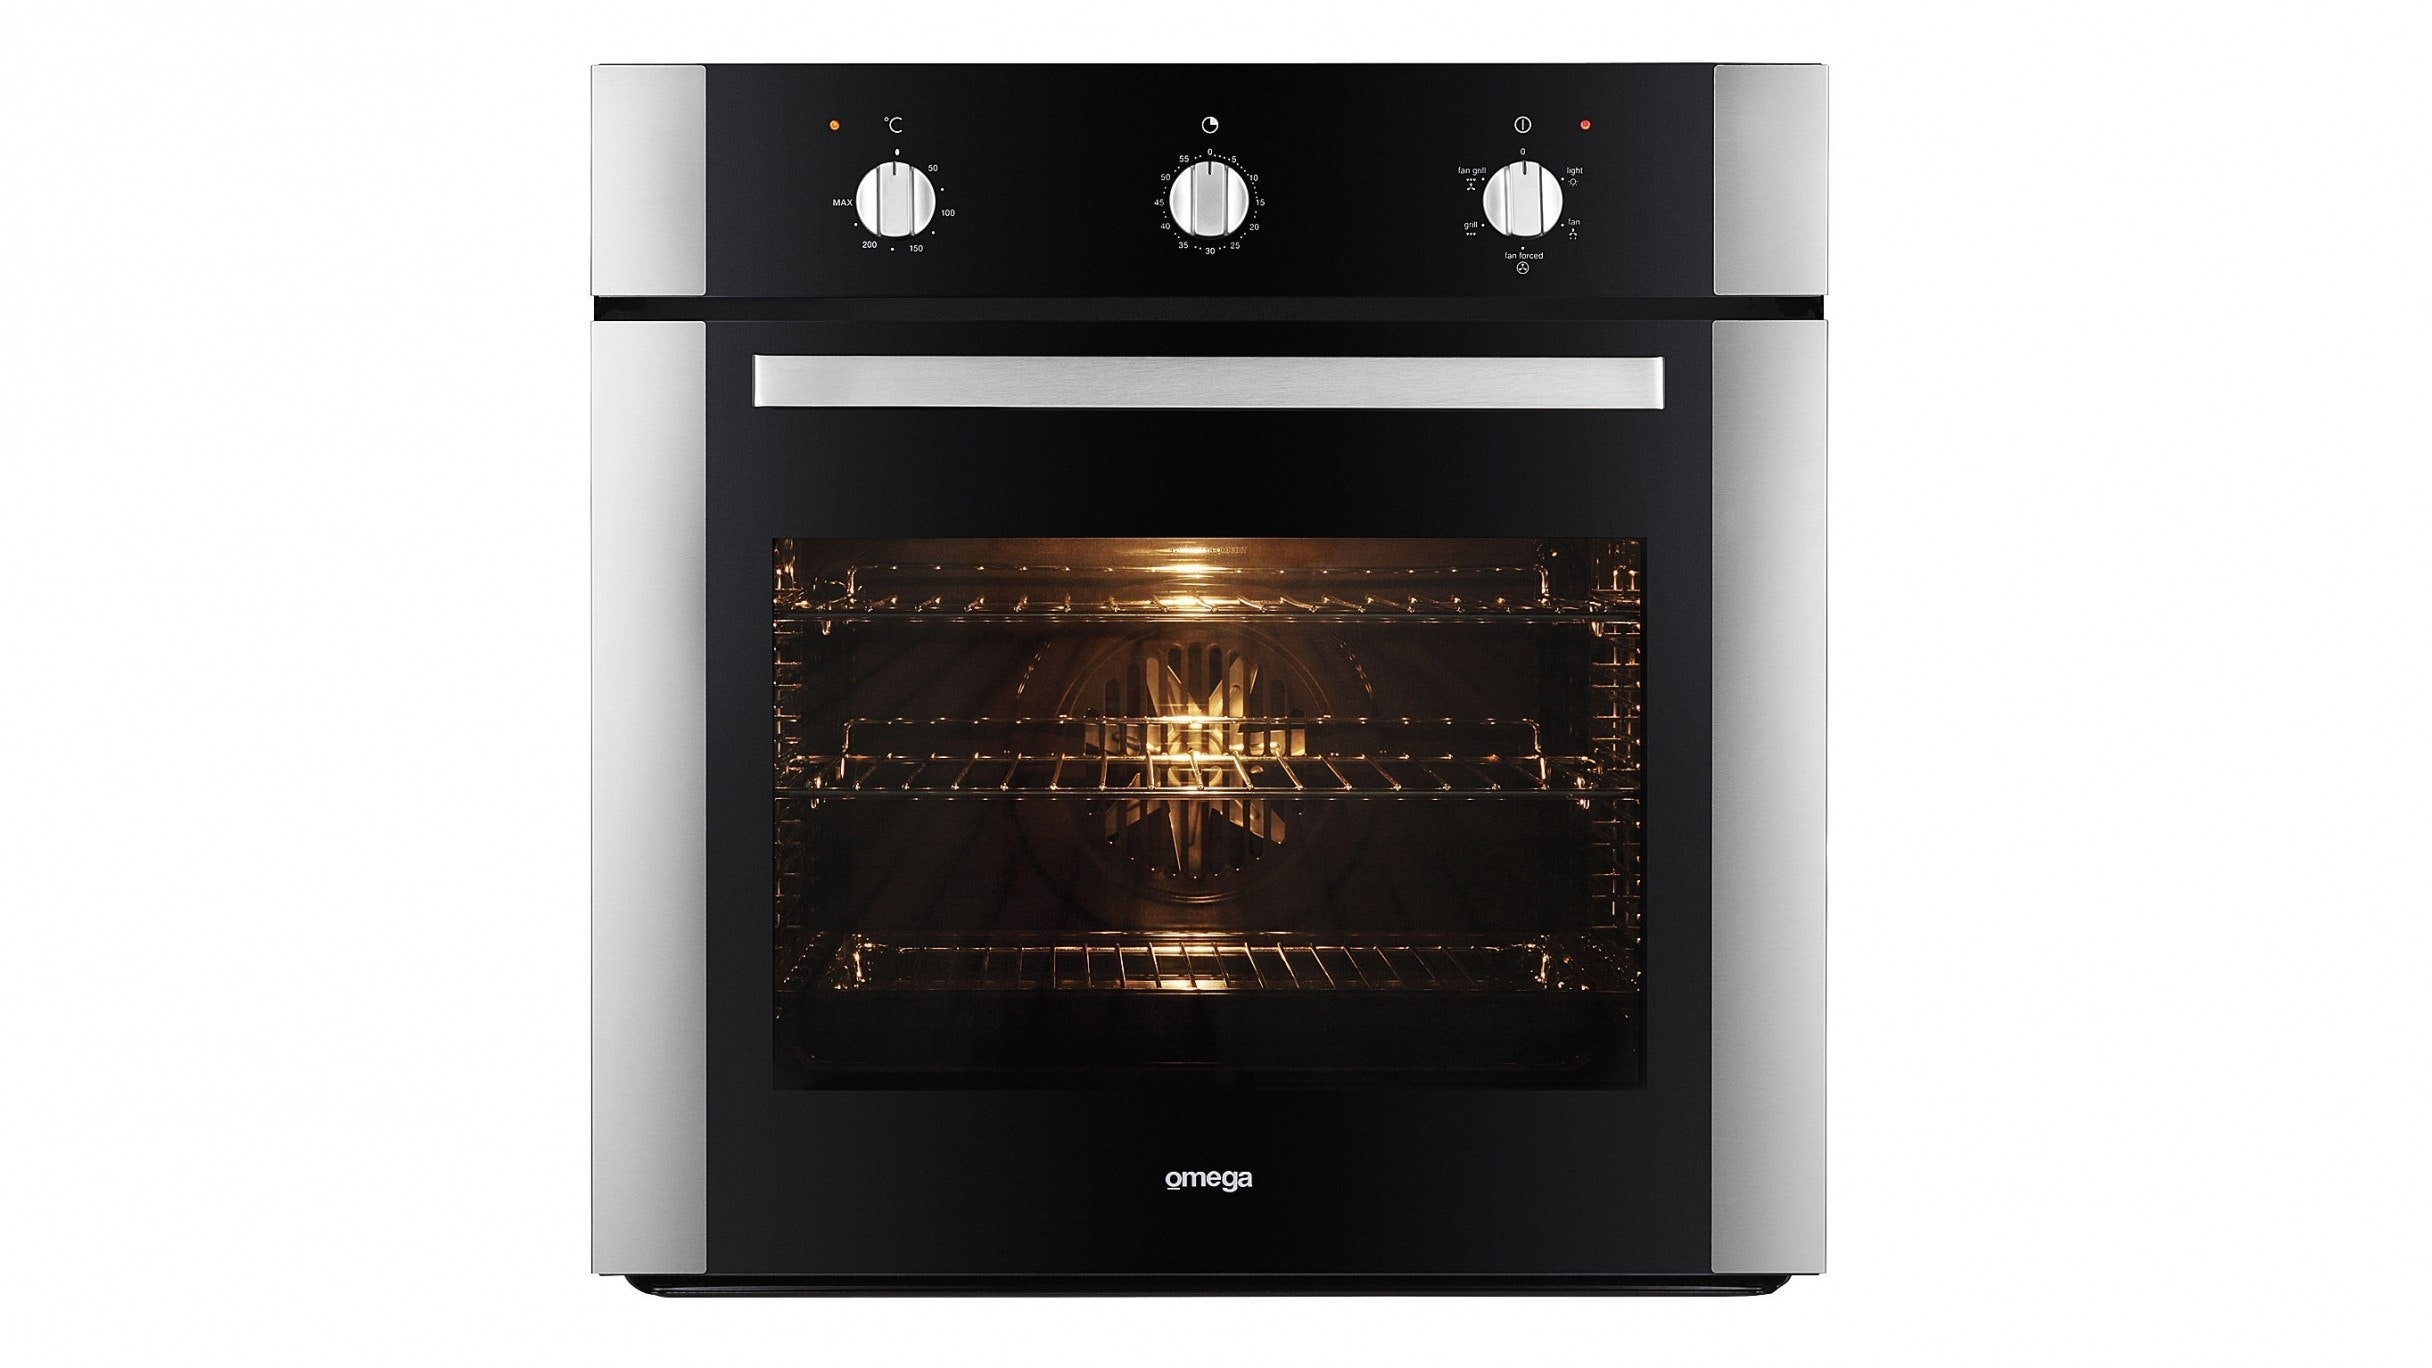 Omega 60cm Built-In Oven